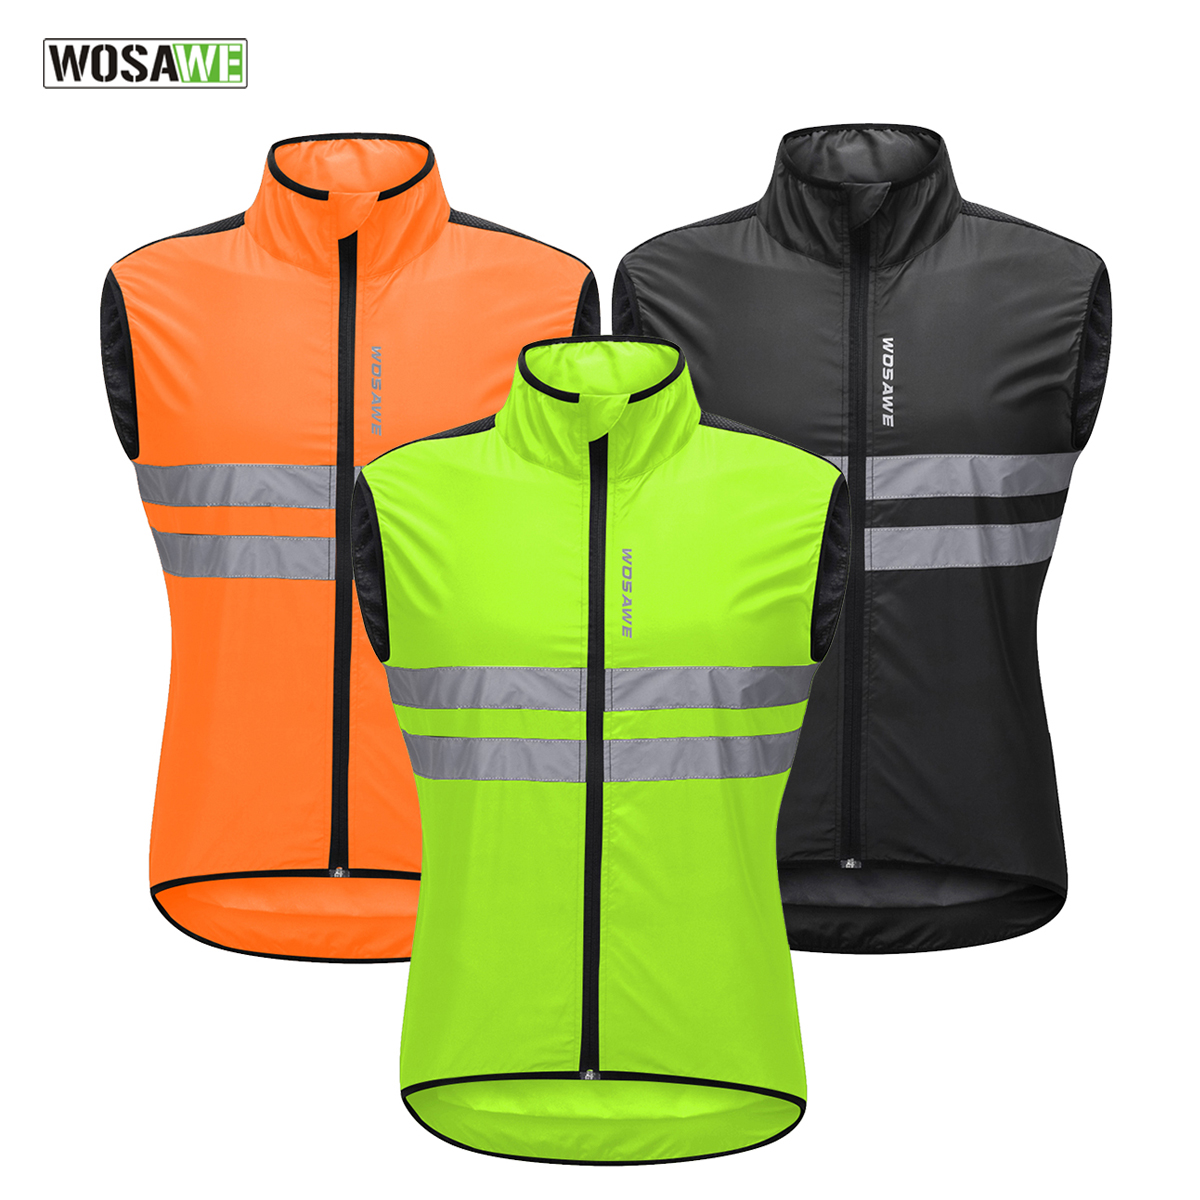 WOSAWE Cycling Vest High Visibility Reflective Safety Vest ... |Motorcycle Safety Vest Womens